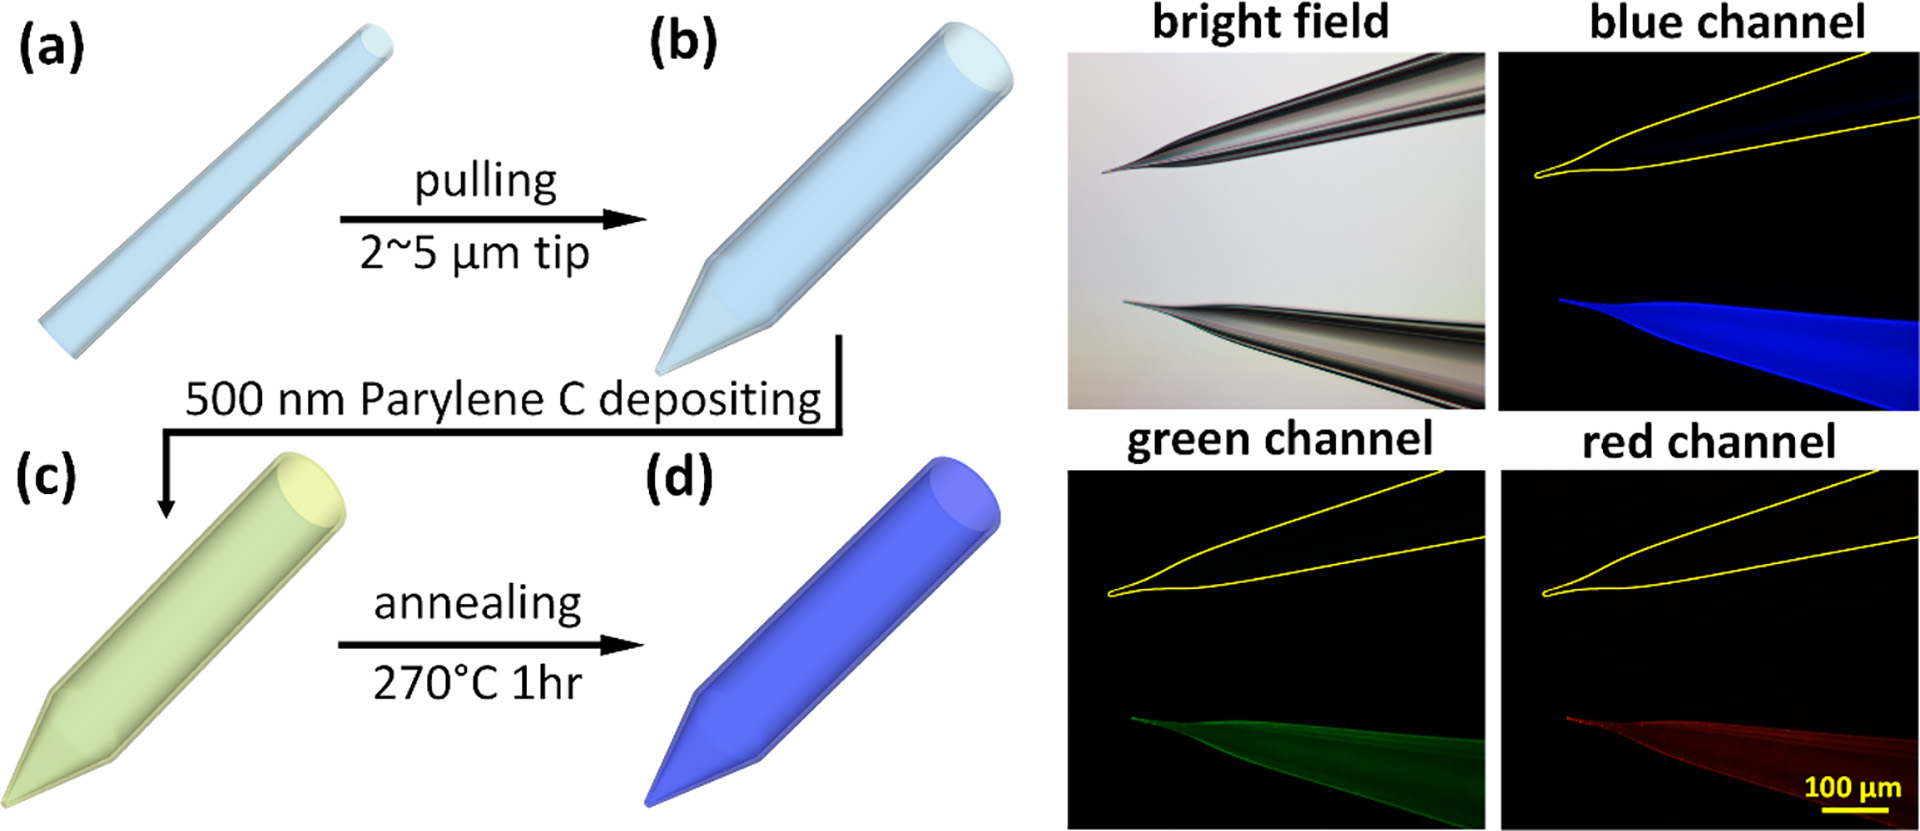 Fluorescently visible Parylene-C coated pipette